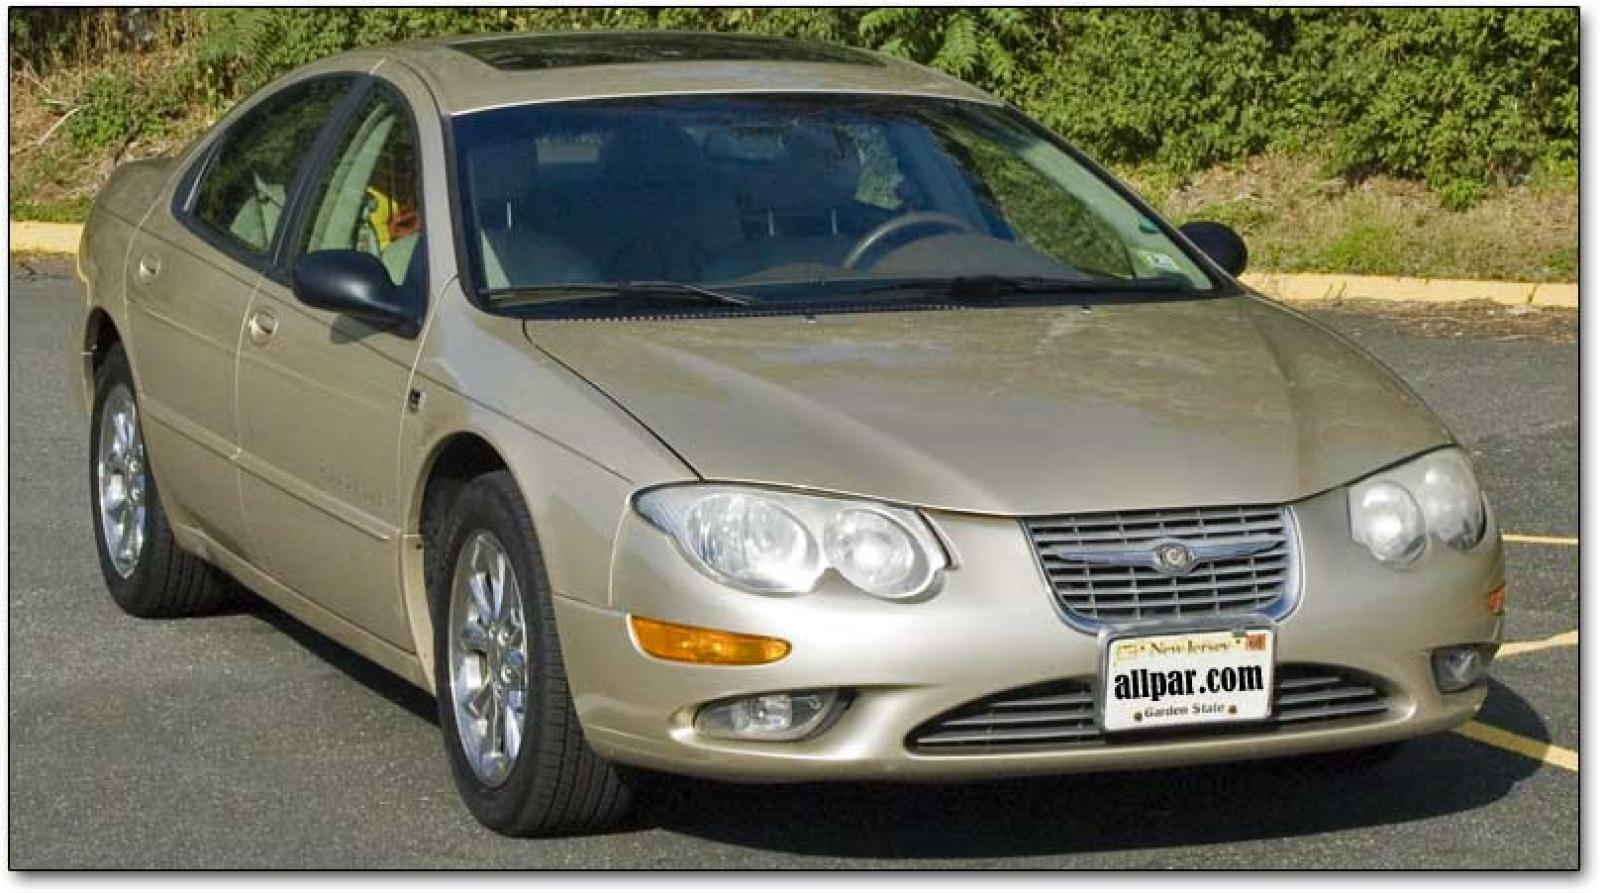 2000 Chrysler 300 2000 Chrysler Lhs Information And Photos Zombiedrive